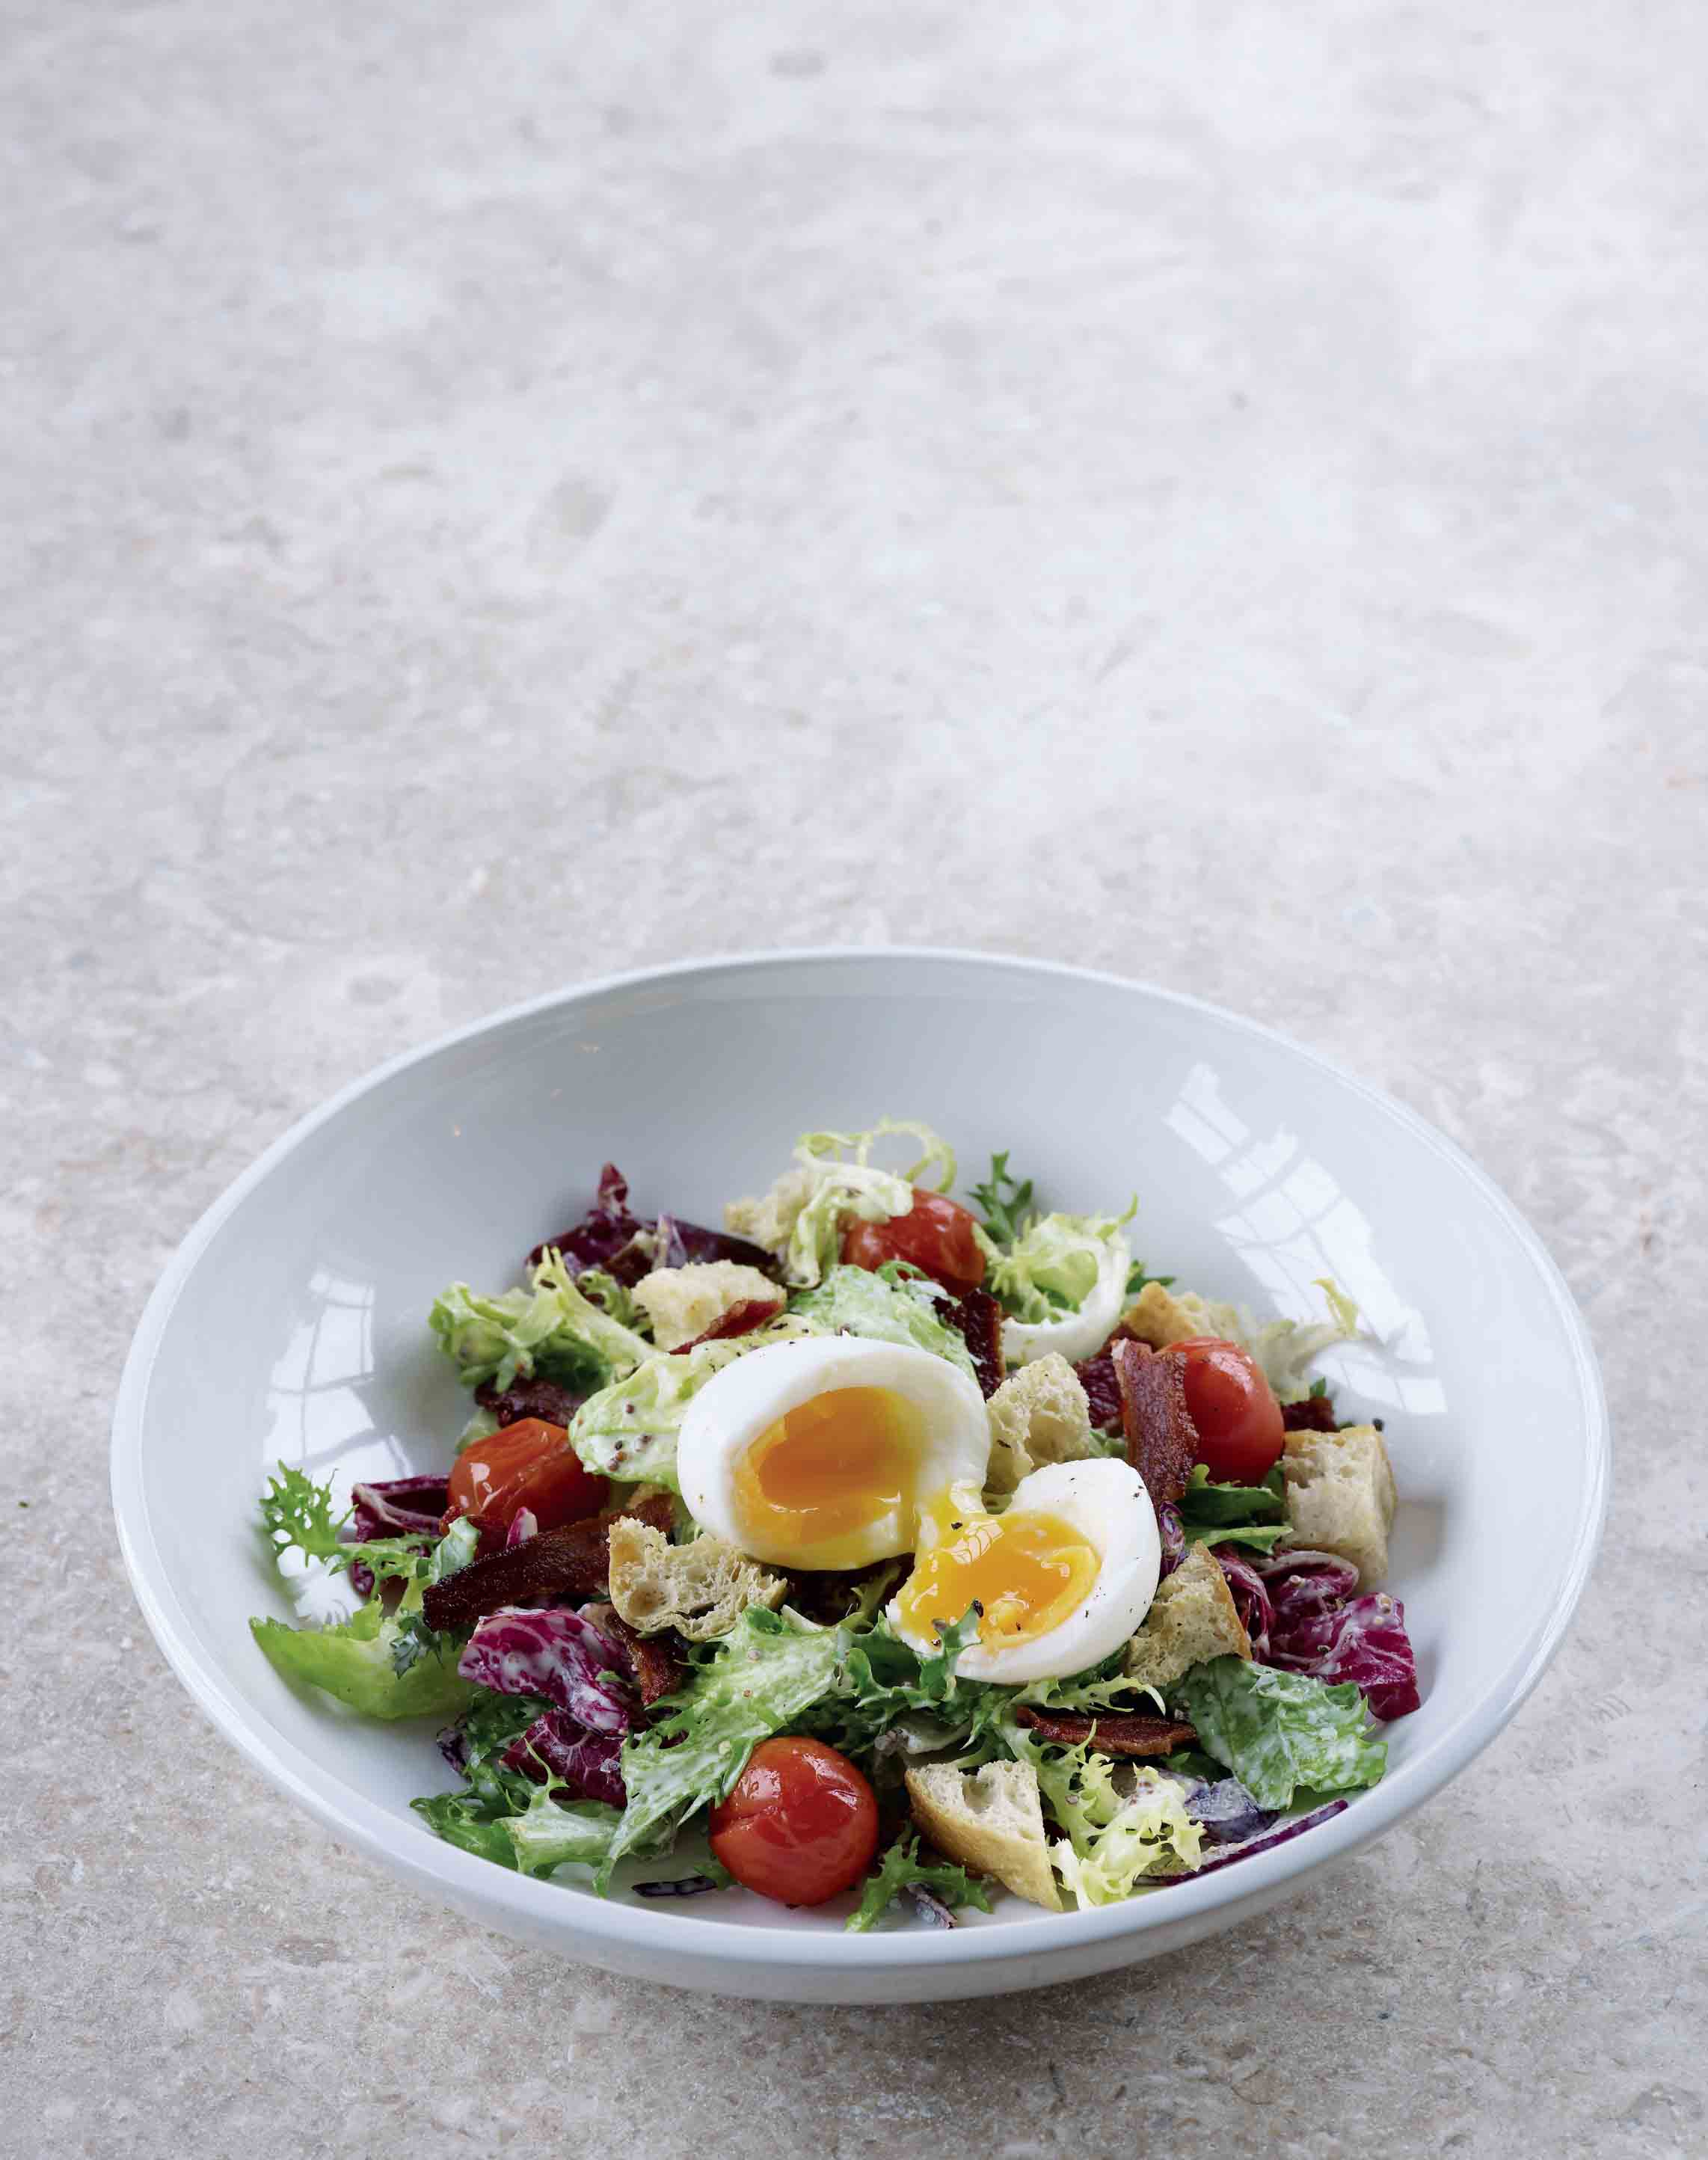 BLT salad with soft-boiled eggs